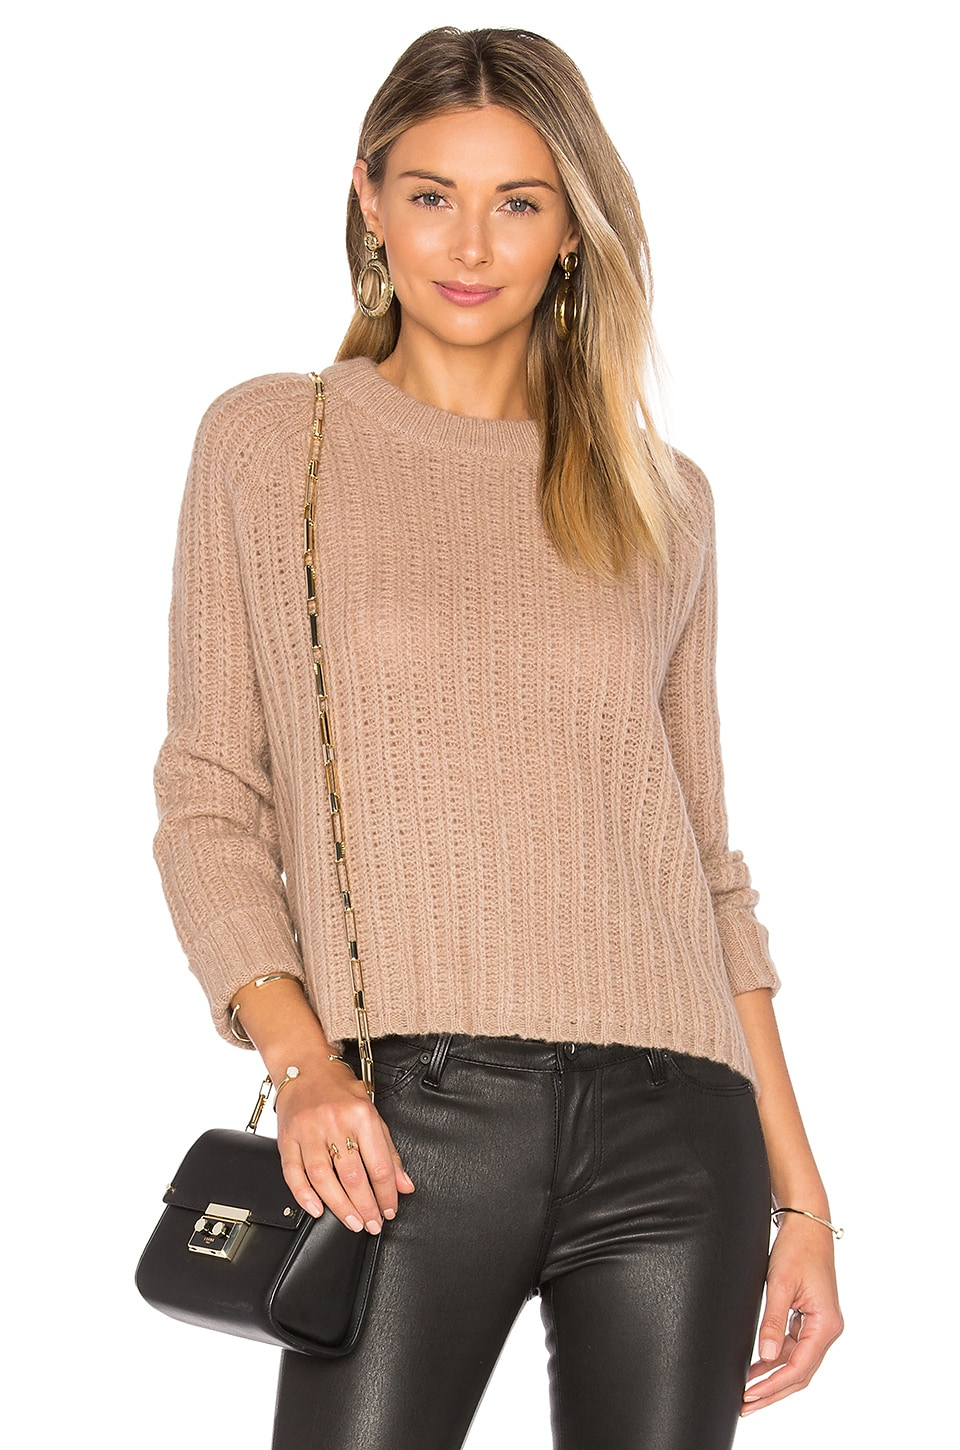 360 Sweater Inka Sweater in Faune